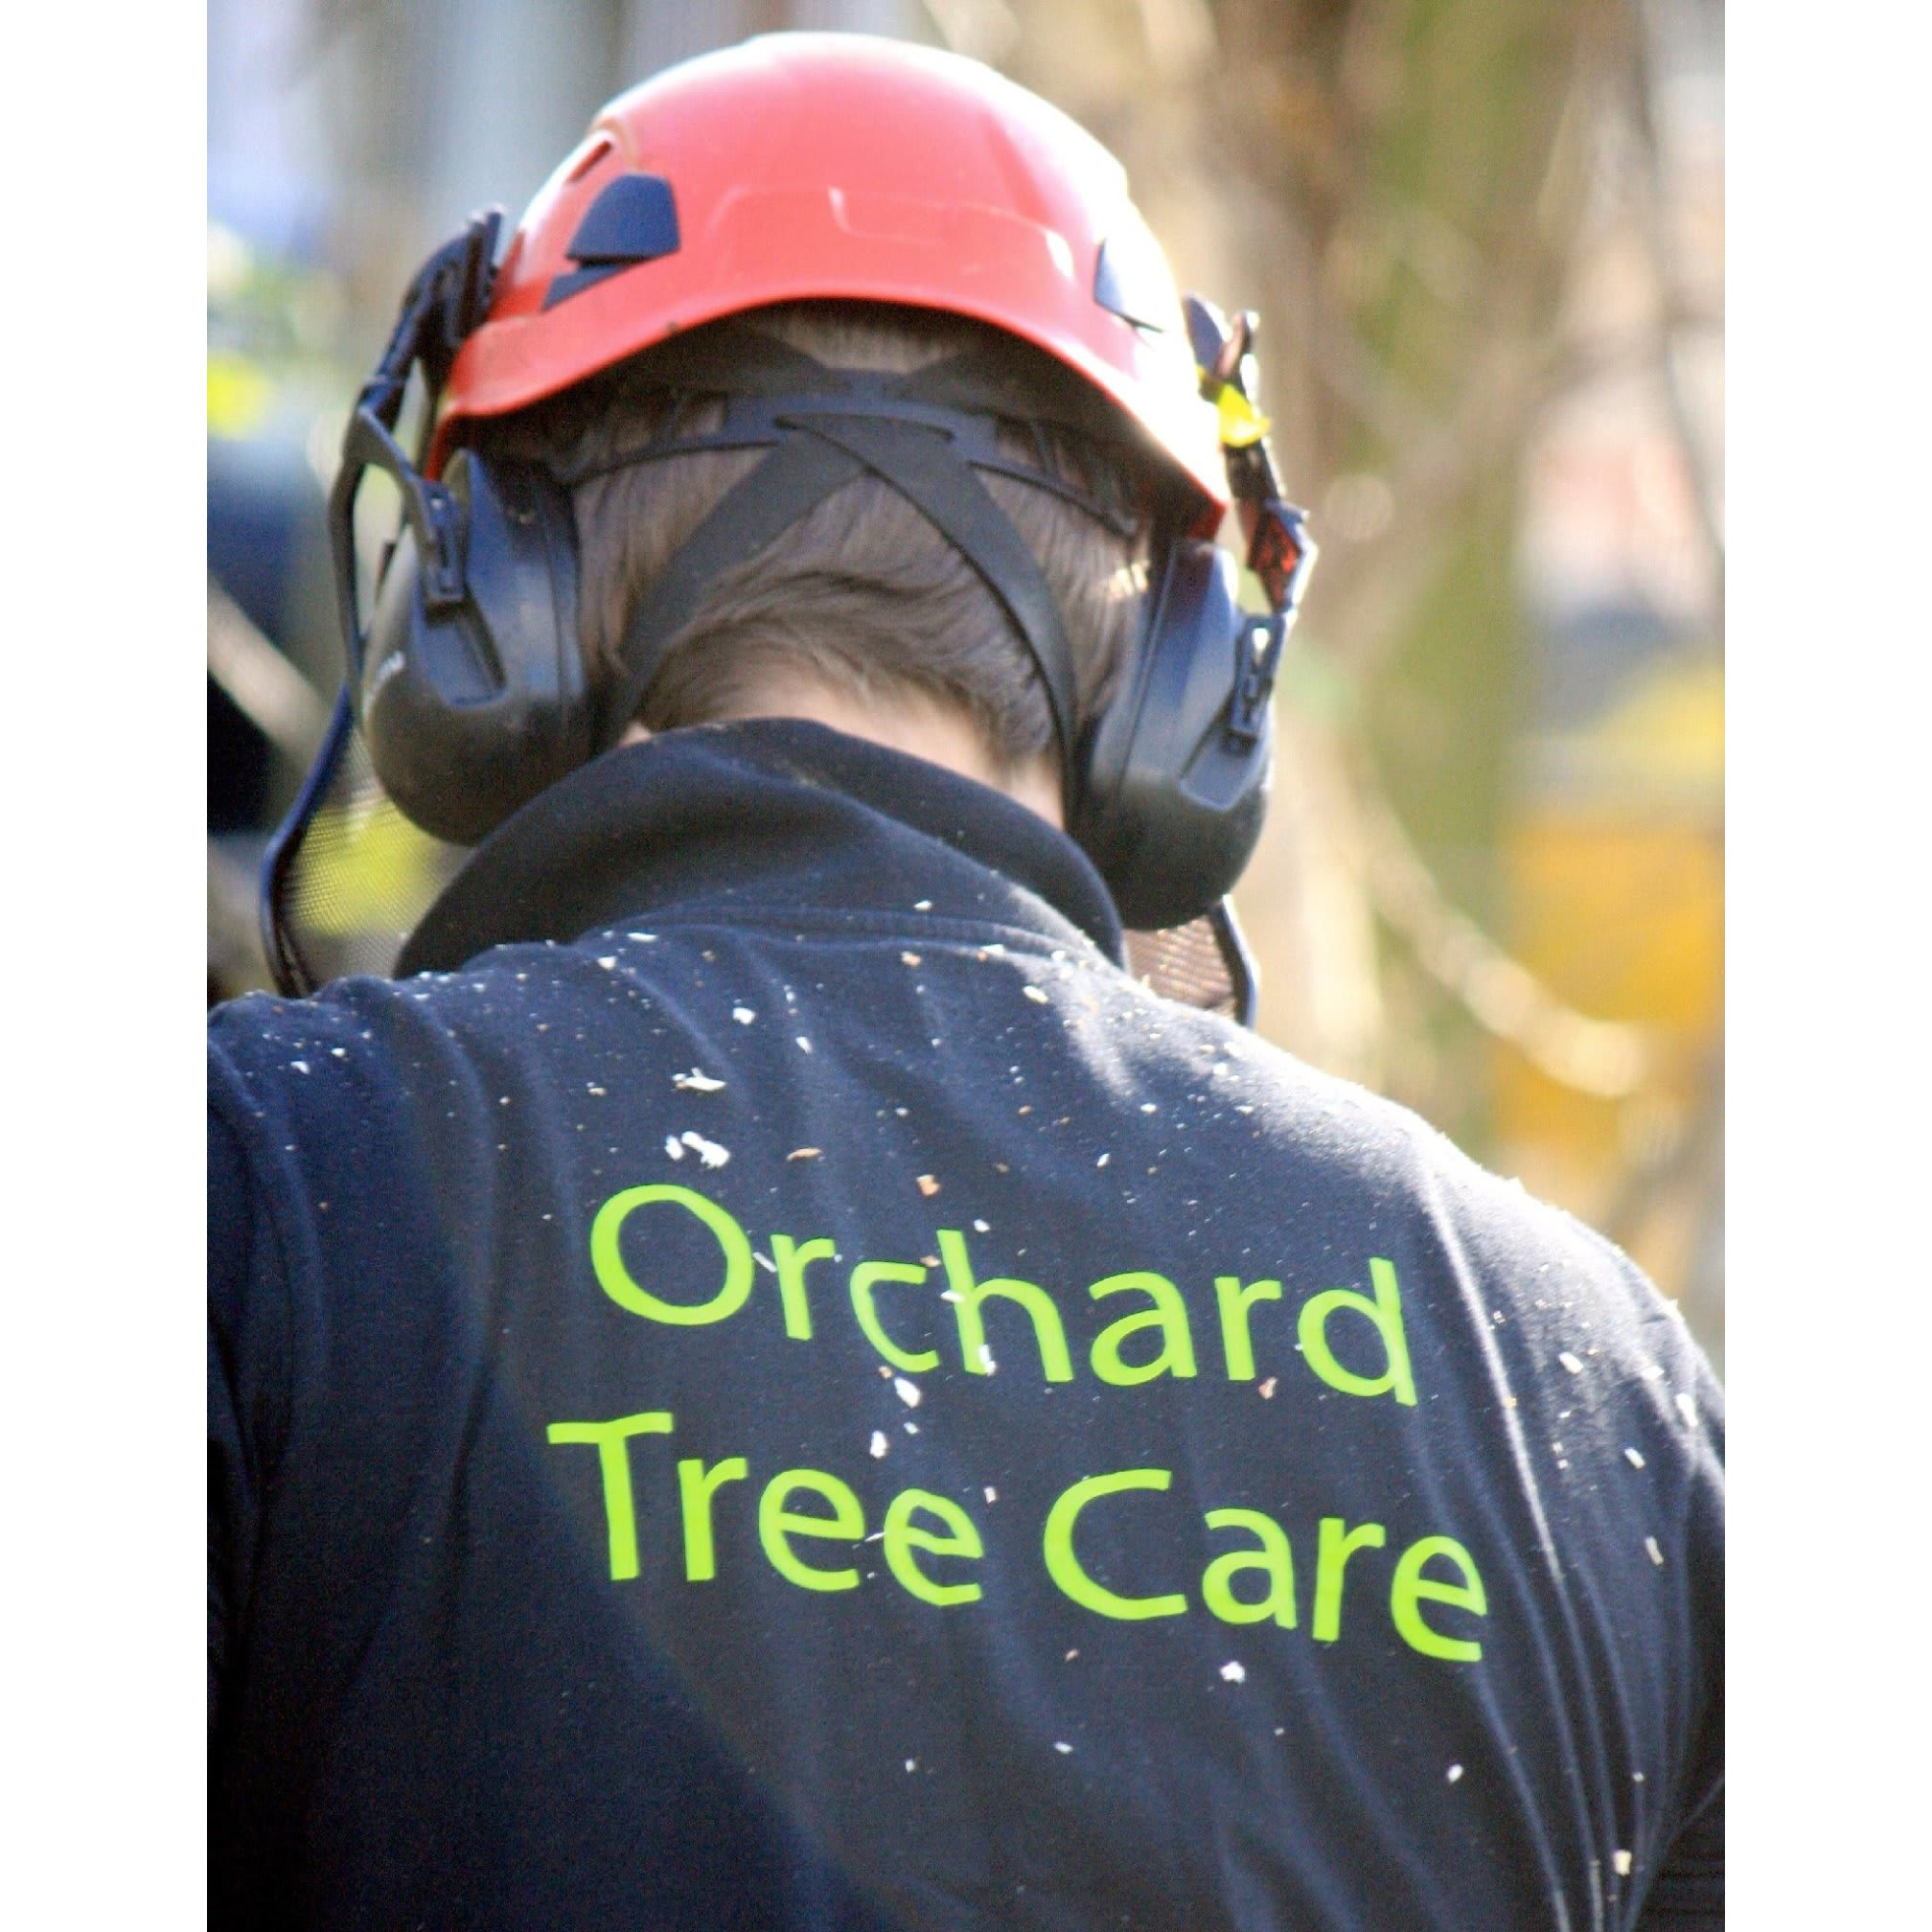 Orchard Tree Care - Nottingham, Nottinghamshire NG16 5BE - 01773 715649 | ShowMeLocal.com